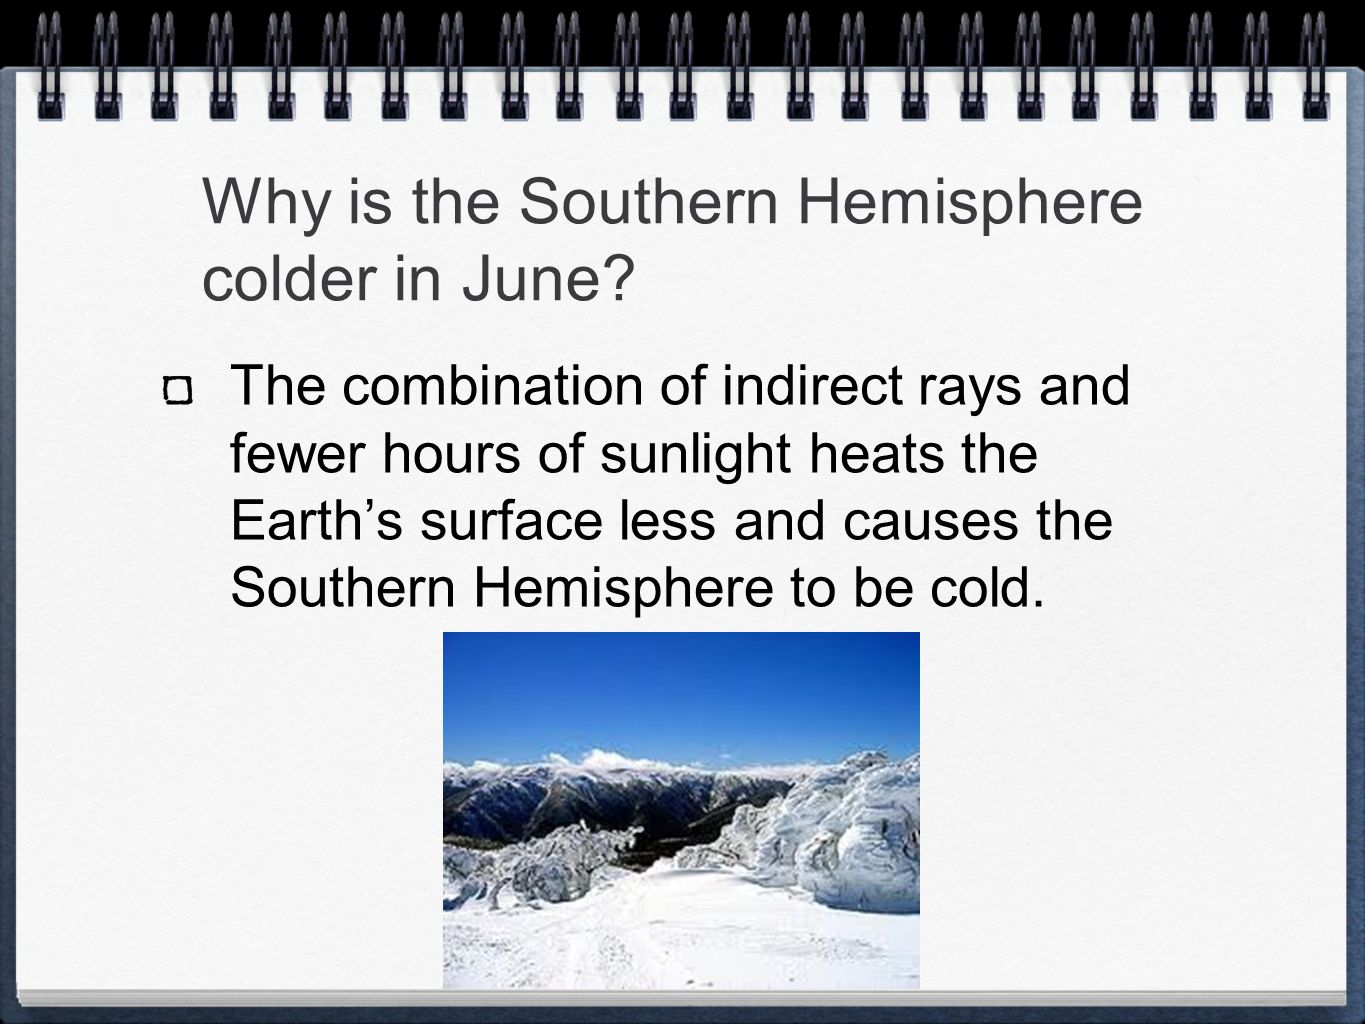 Why is the Southern Hemisphere colder in June